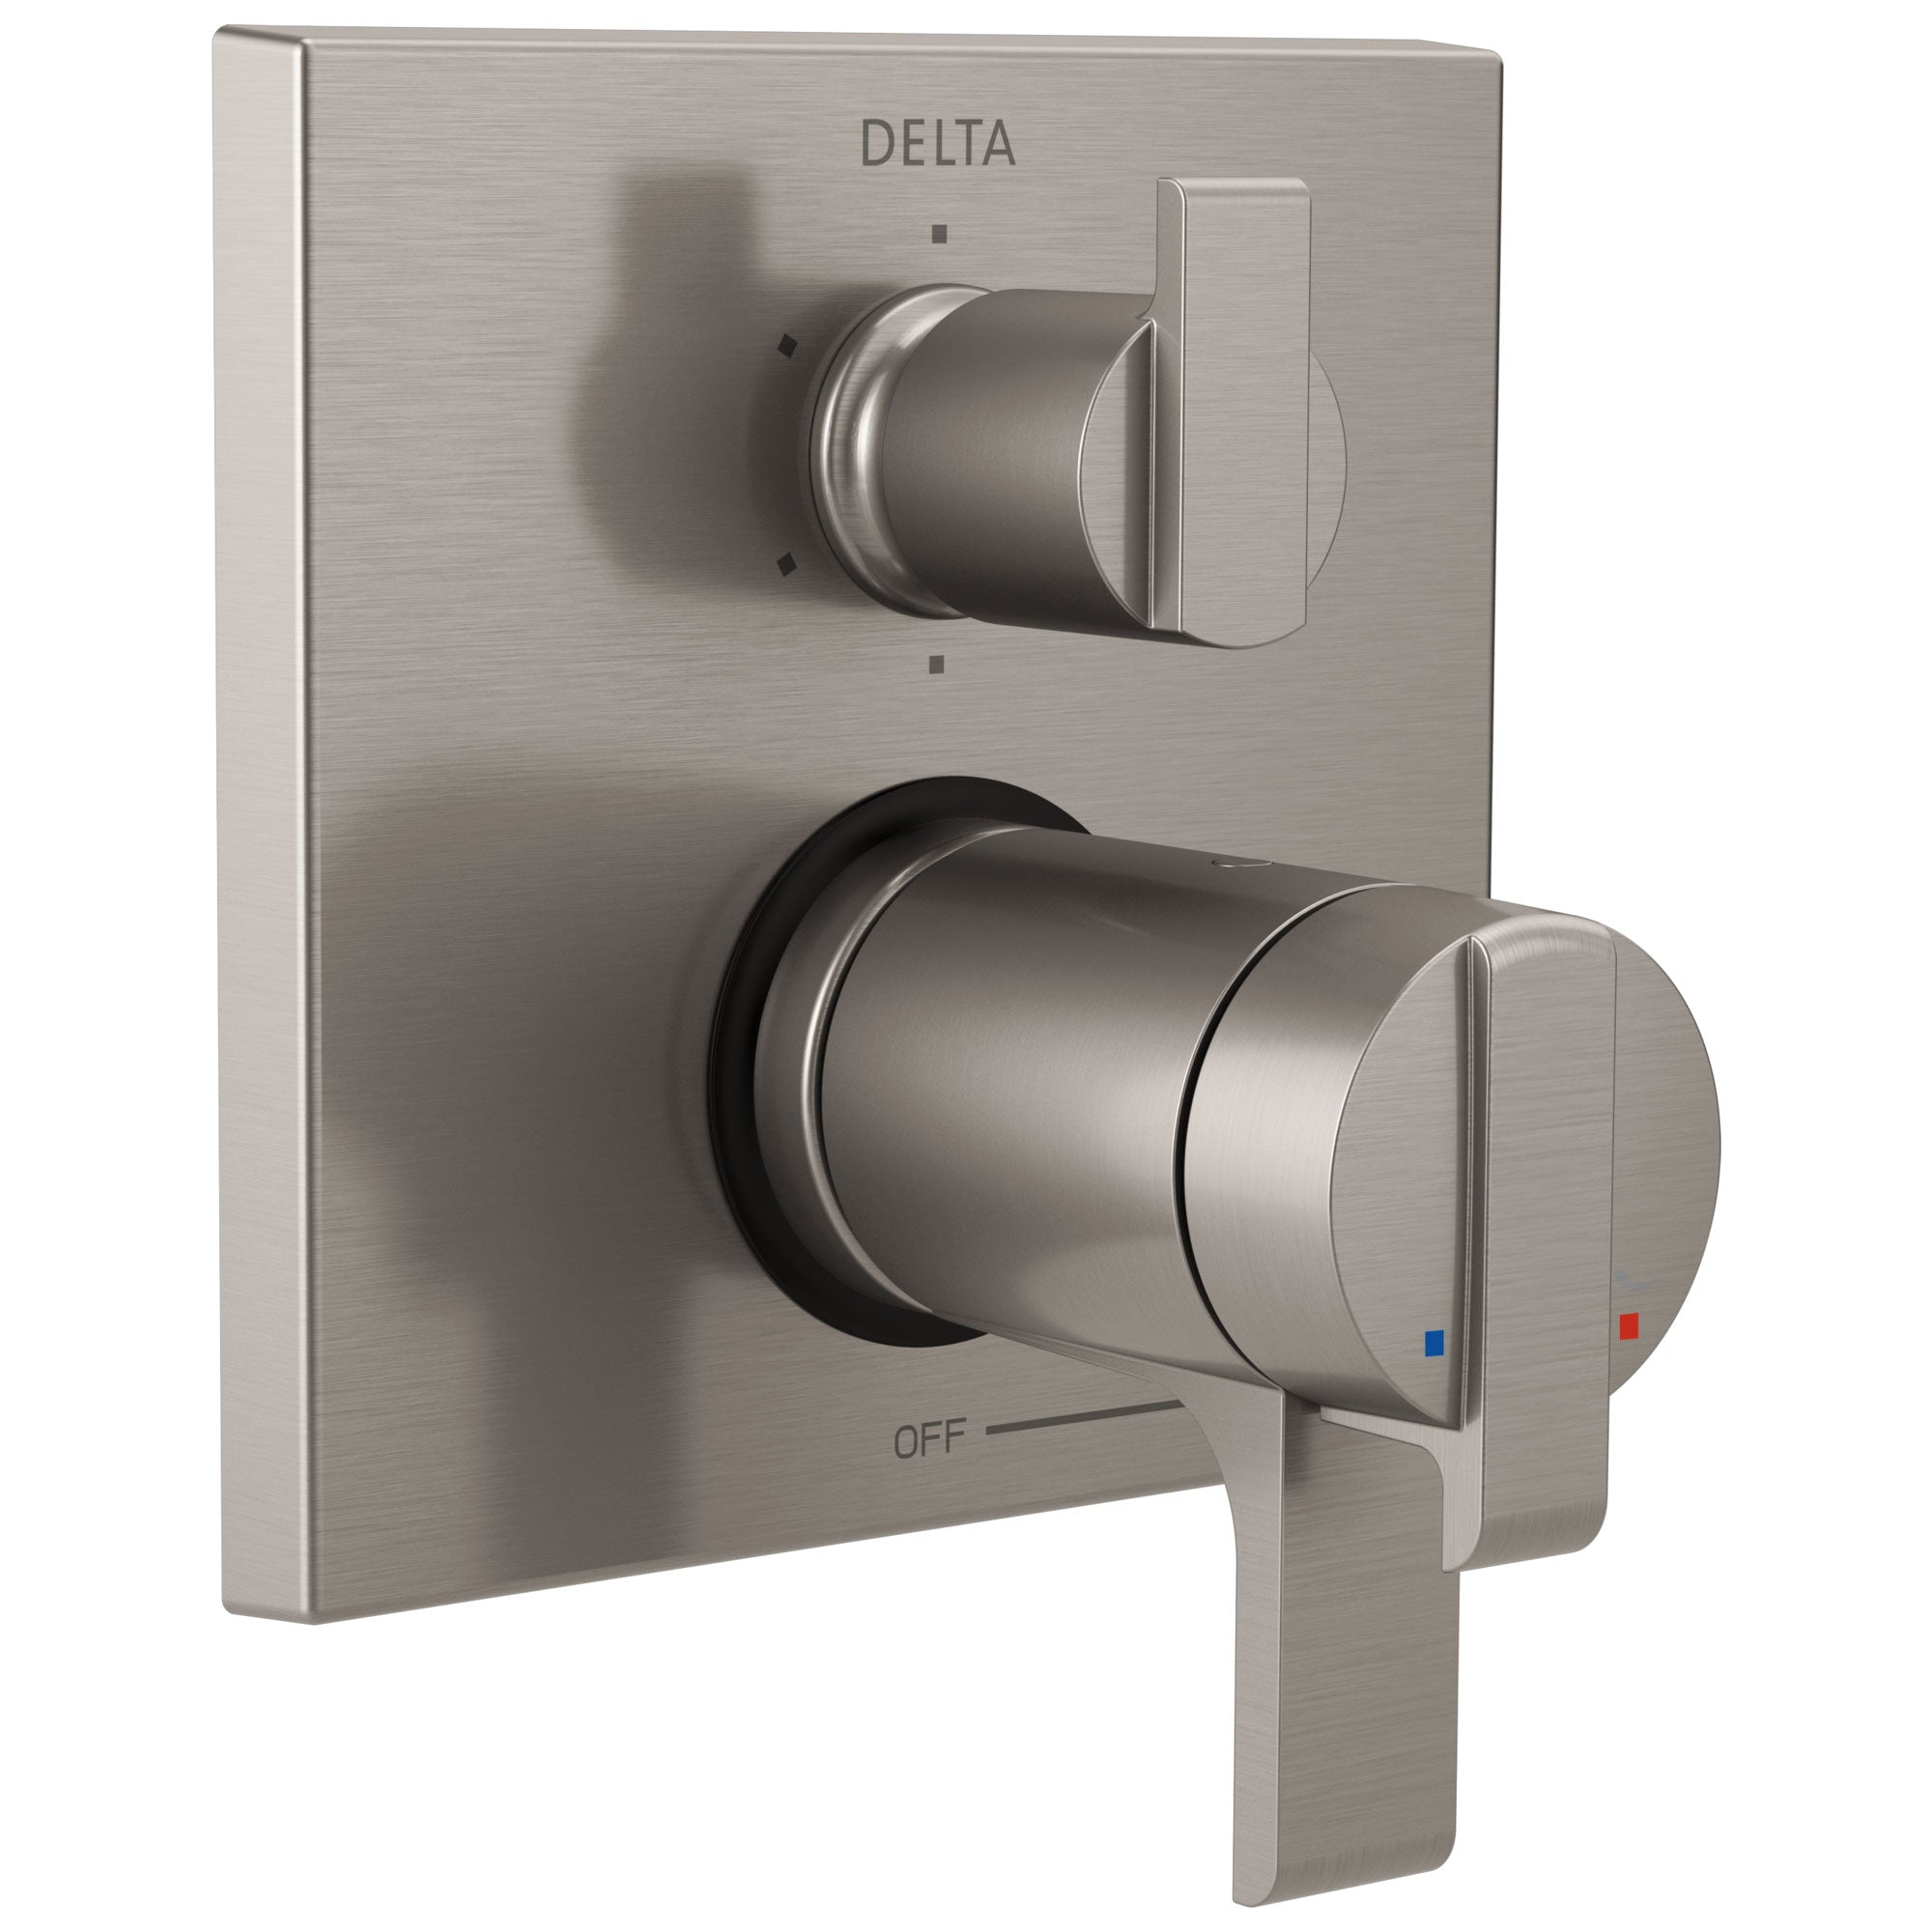 Delta Ara Collection Stainless Steel Finish Thermostatic Shower Faucet Control with 6-Setting Integrated Diverter Trim (Requires Valve) DT27T967SS